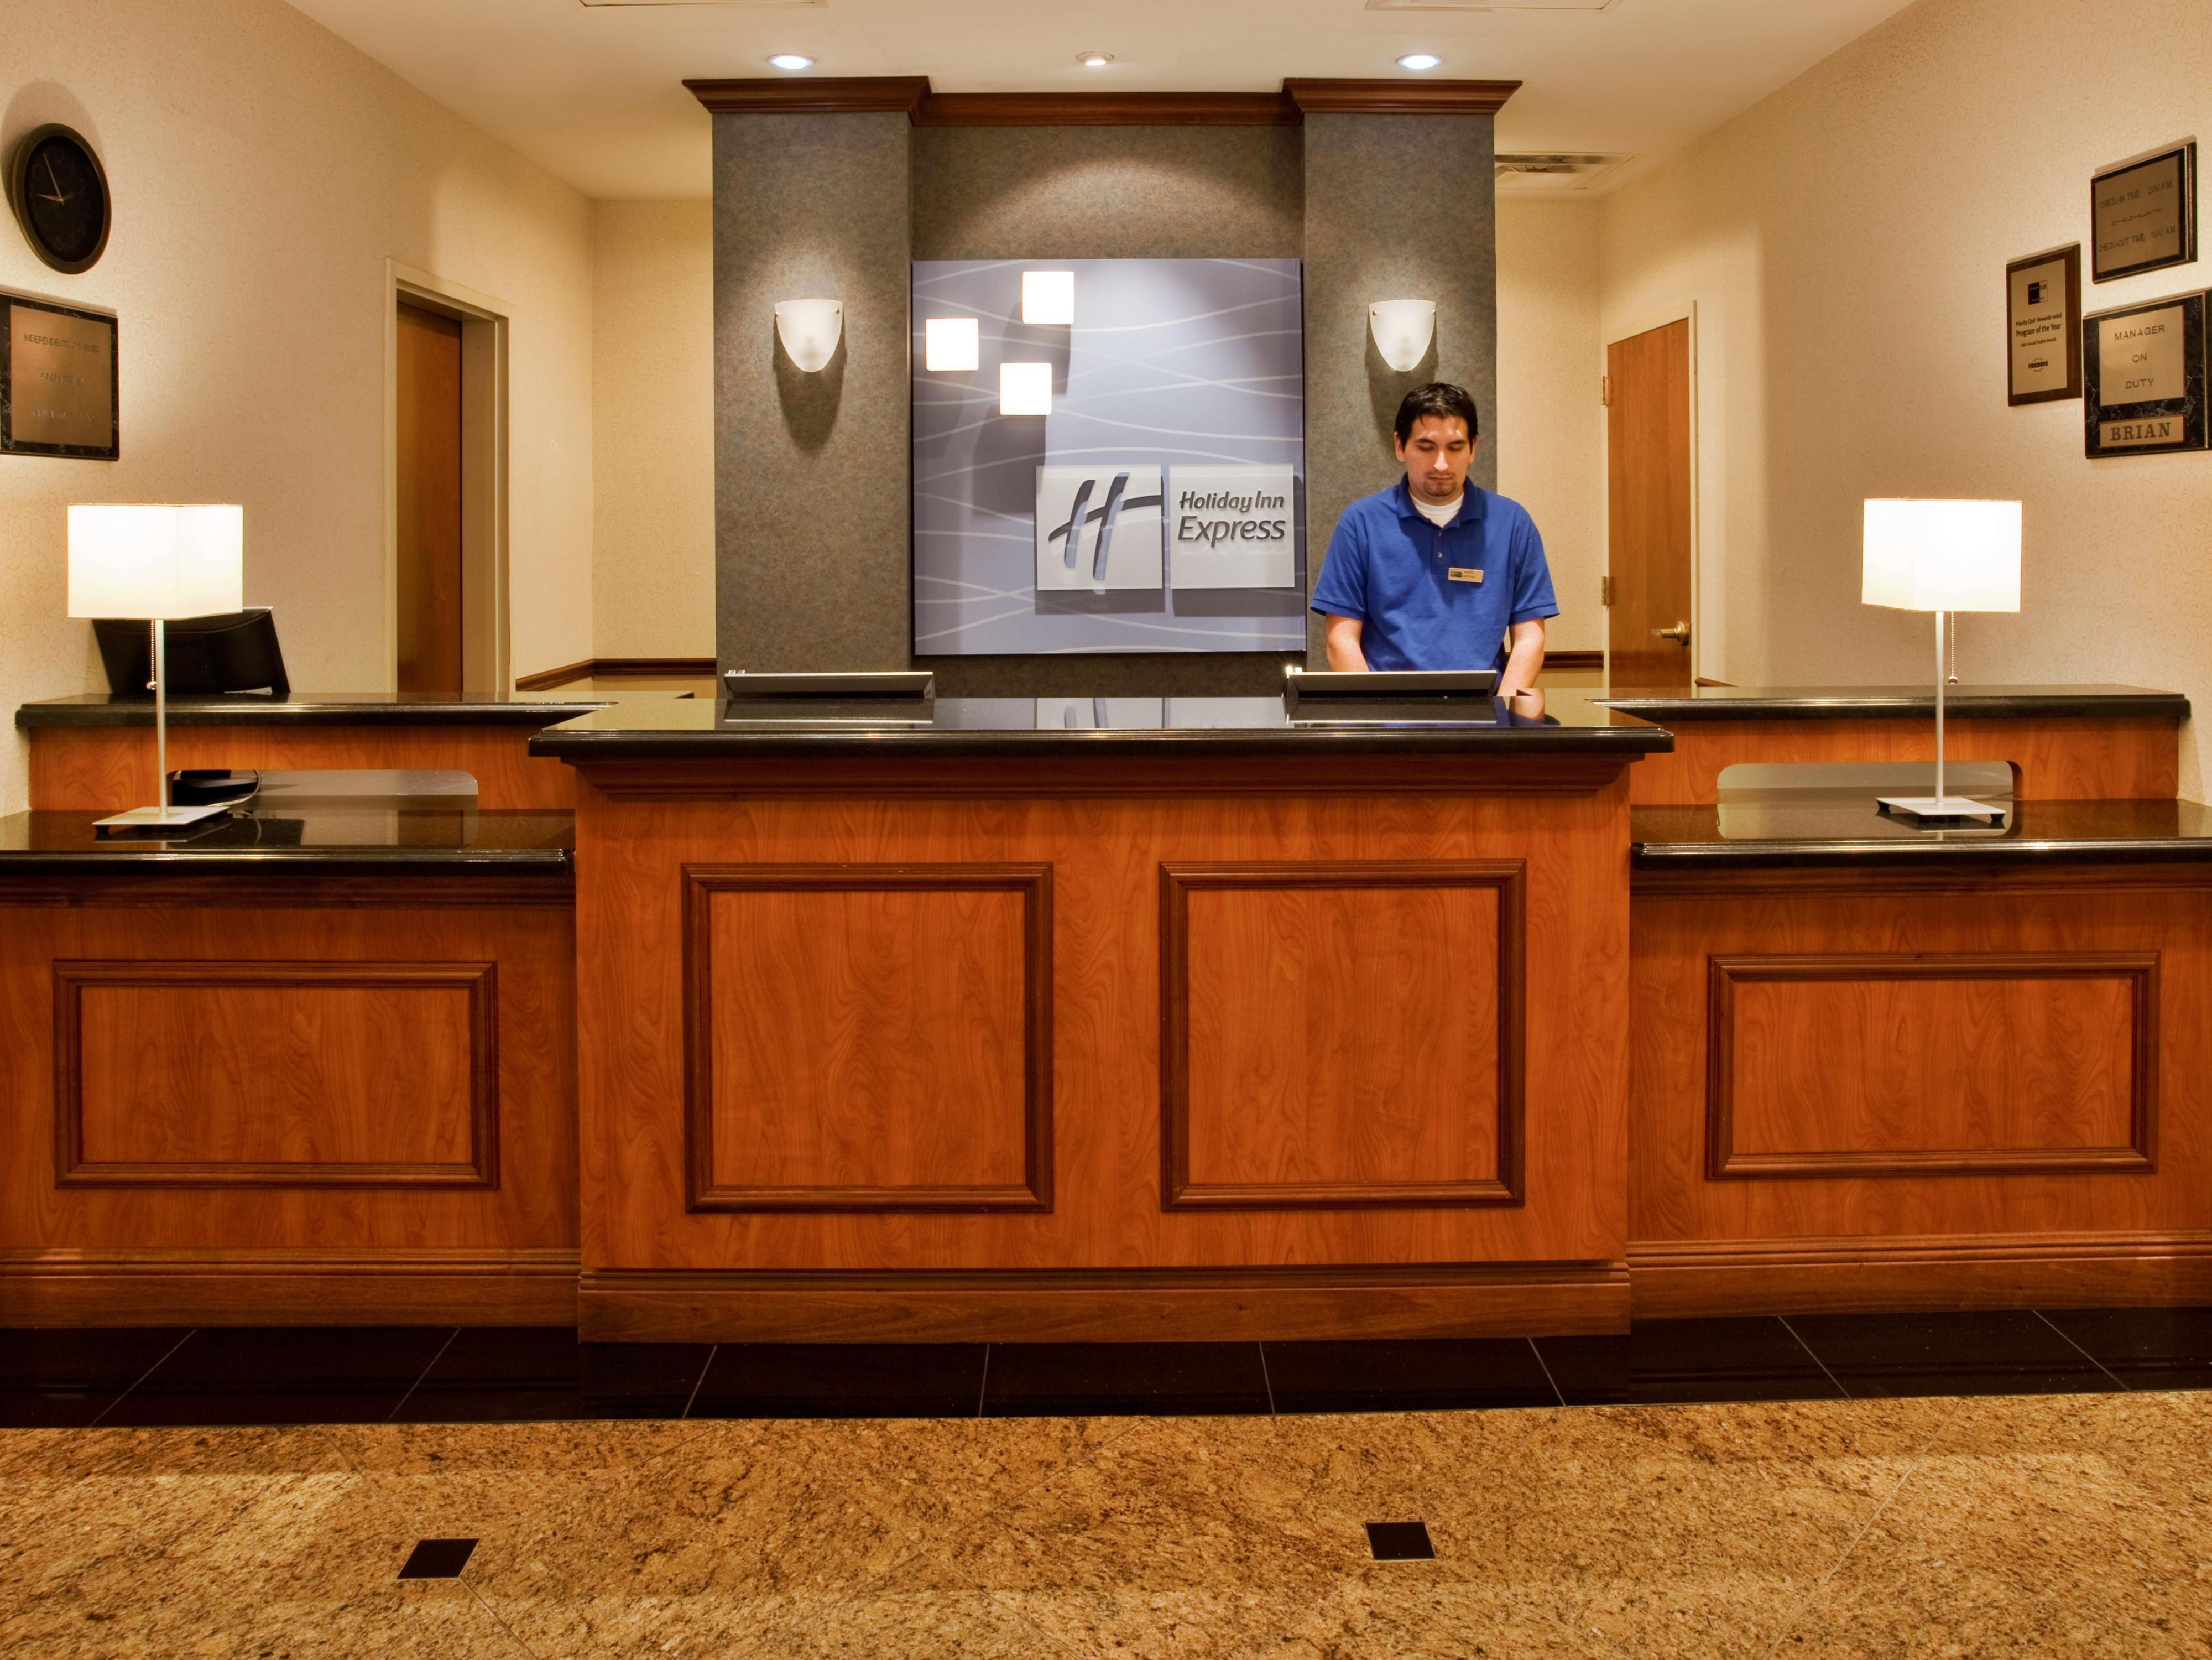 Holiday Inn Express Lake Okeechobee Front Desk Lobby